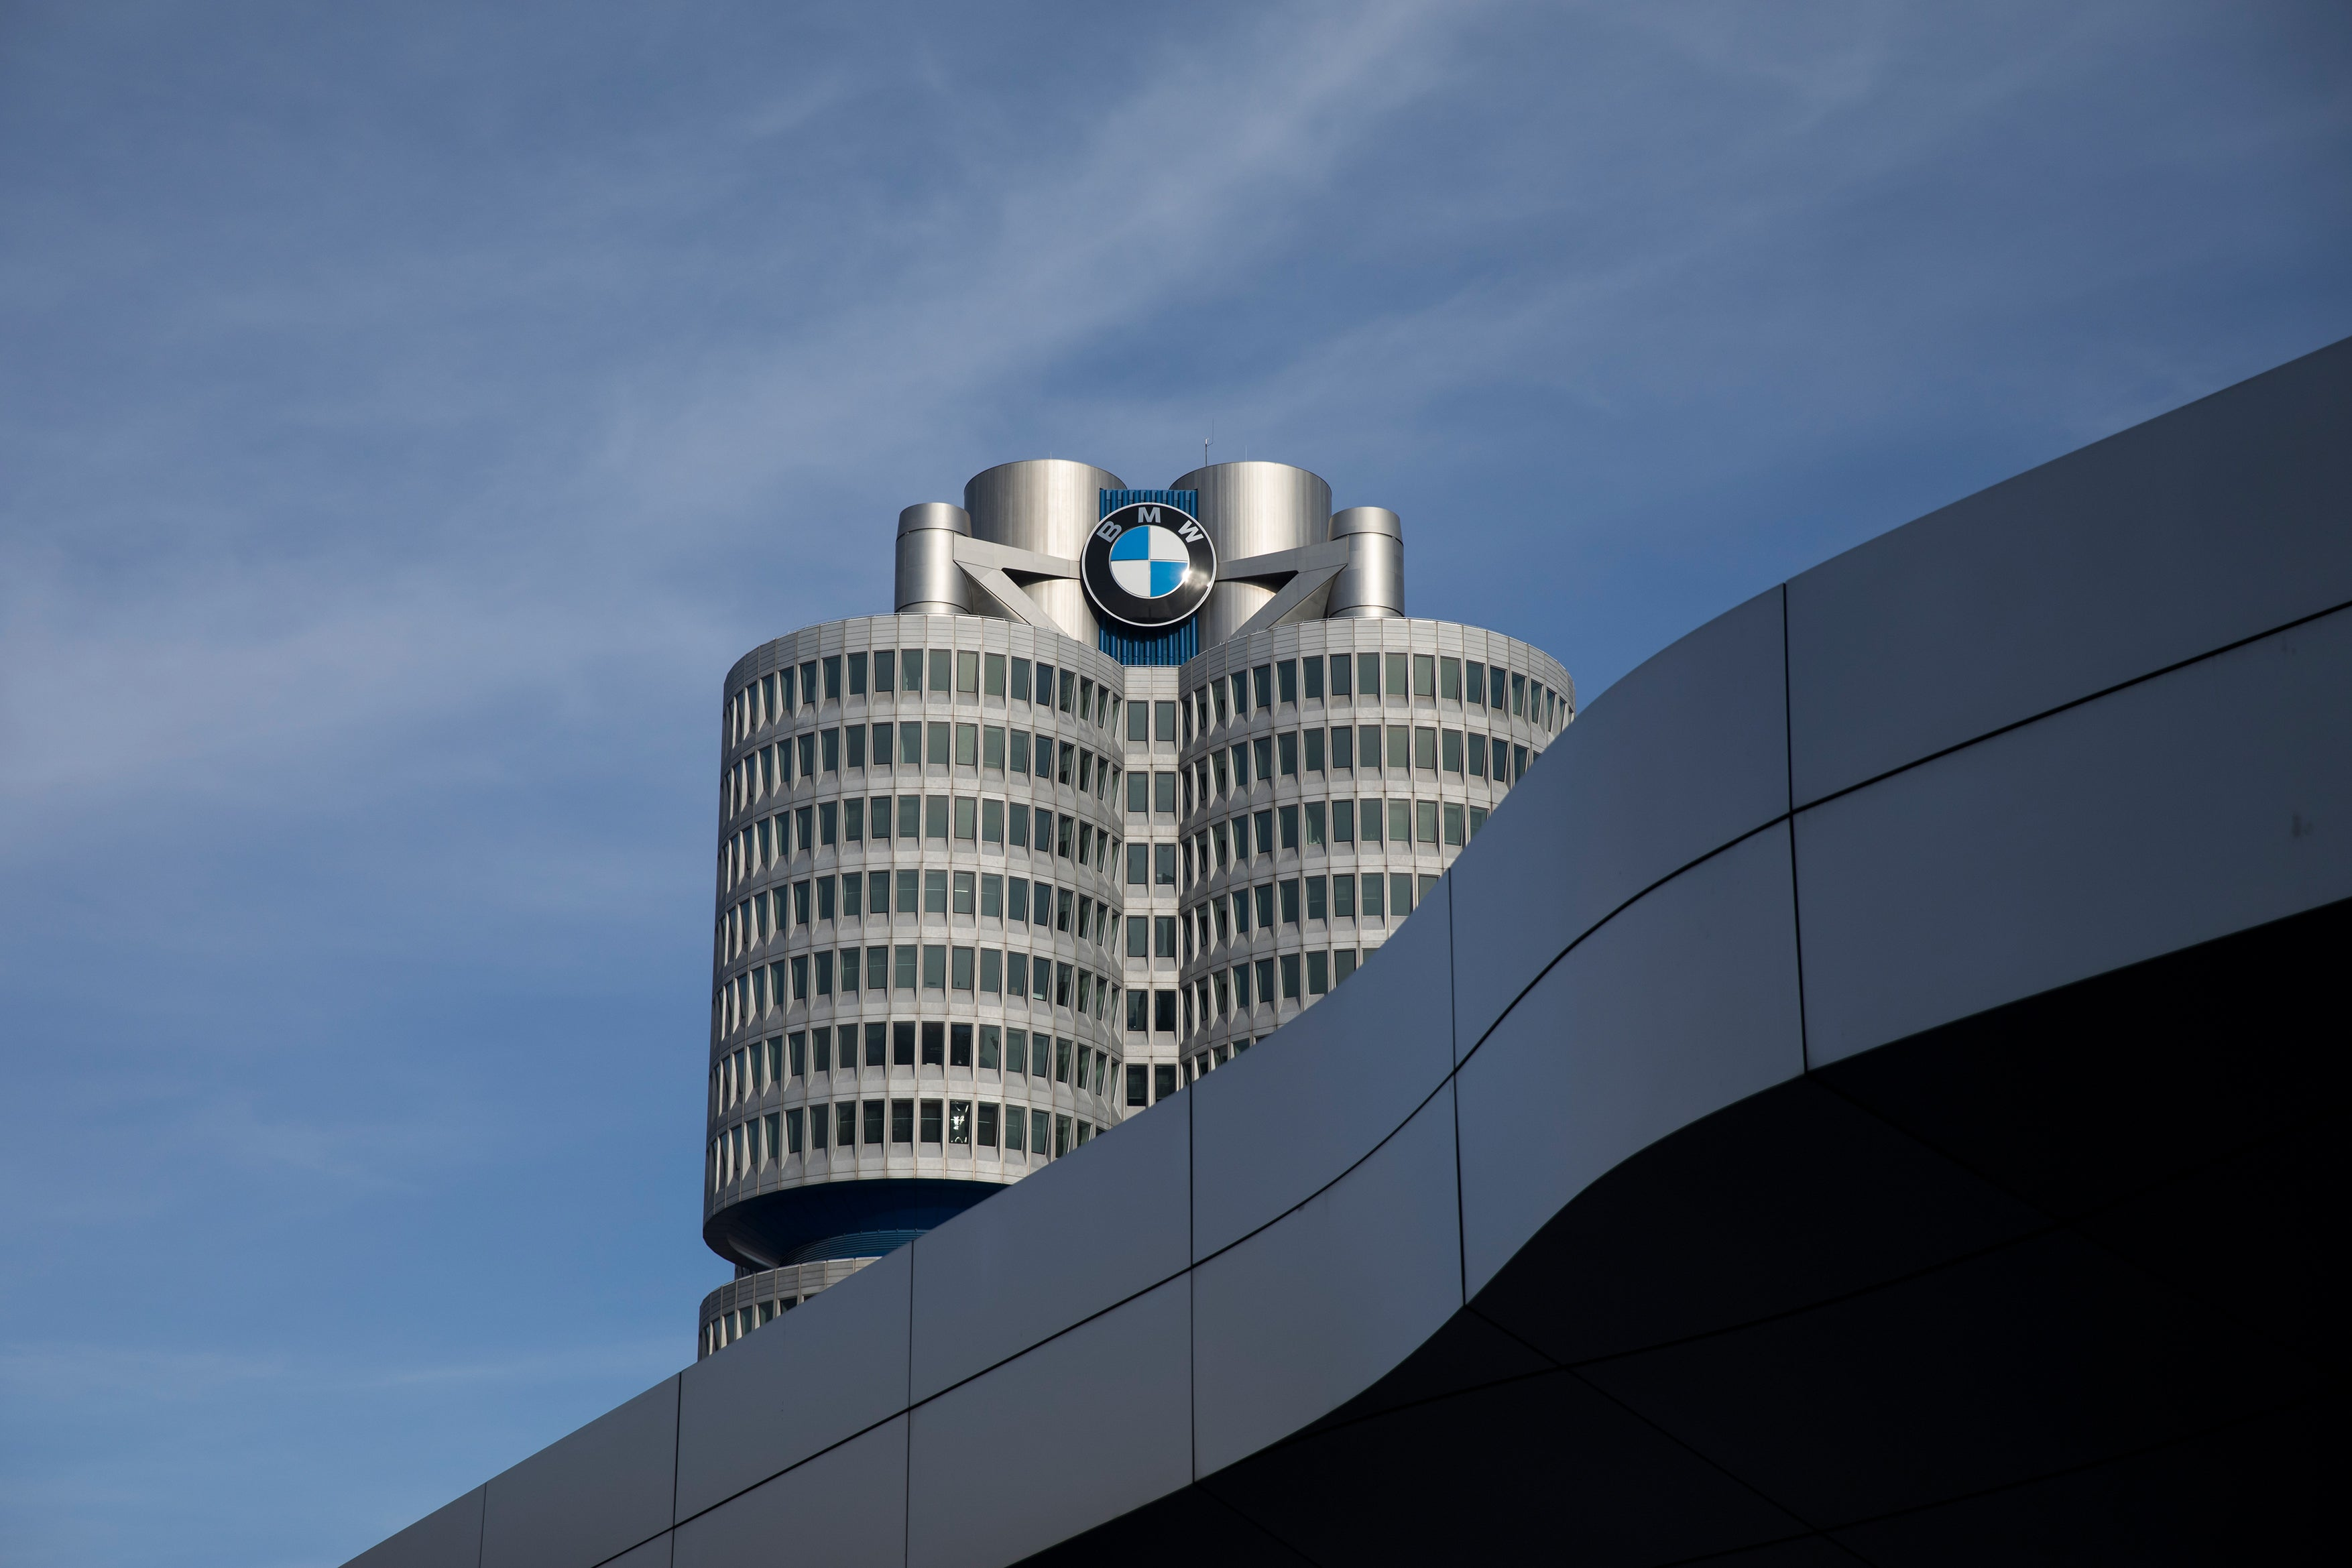 Future Investments Squeeze BMW's Margins Despite Strong